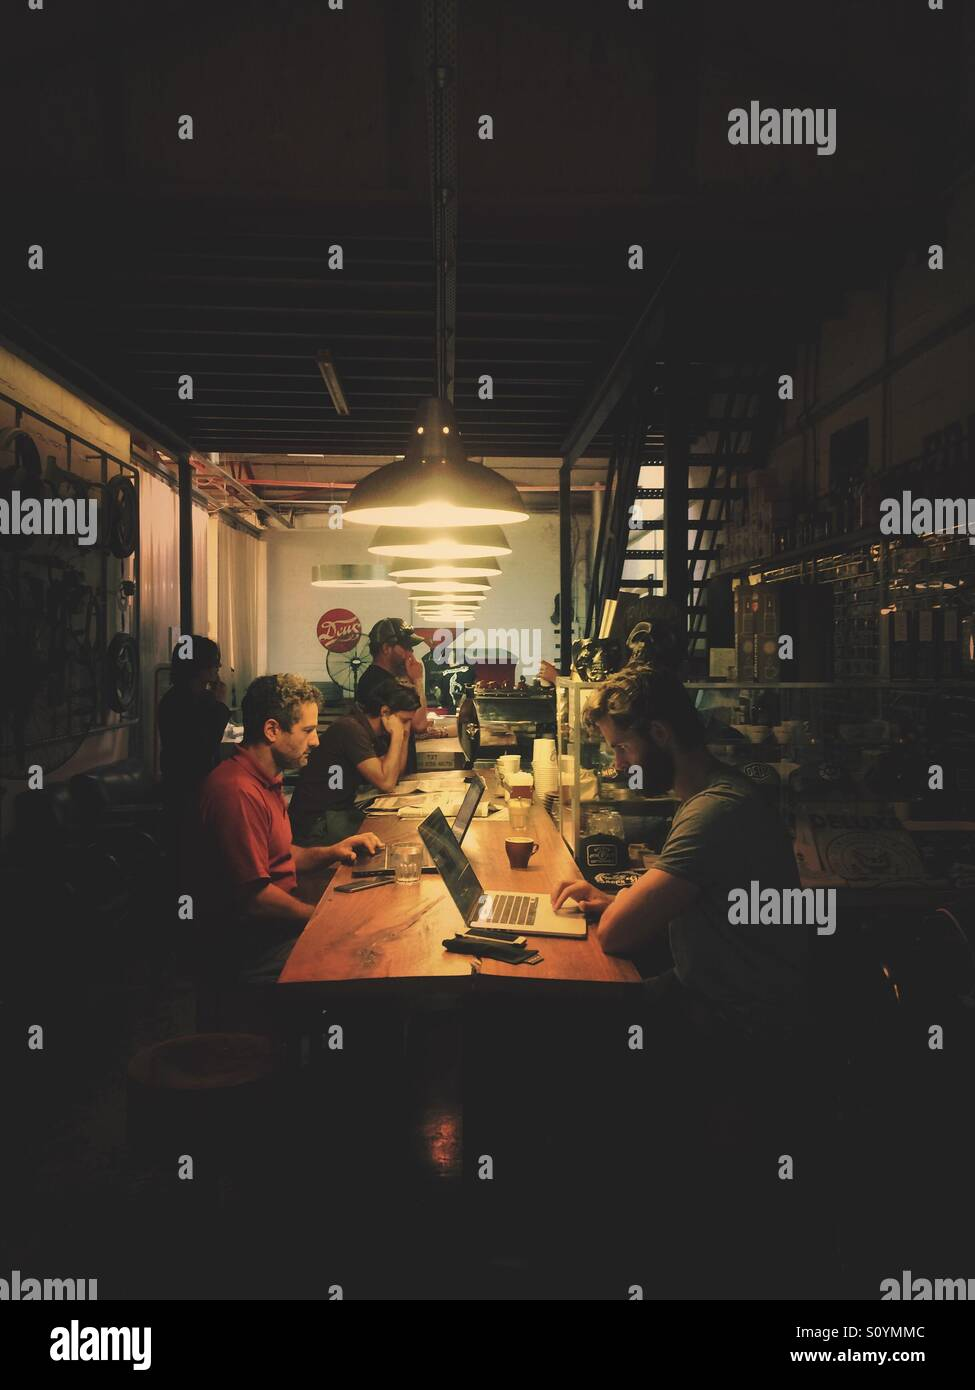 Freelancers working on laptops in coffeehouse. - Stock Image